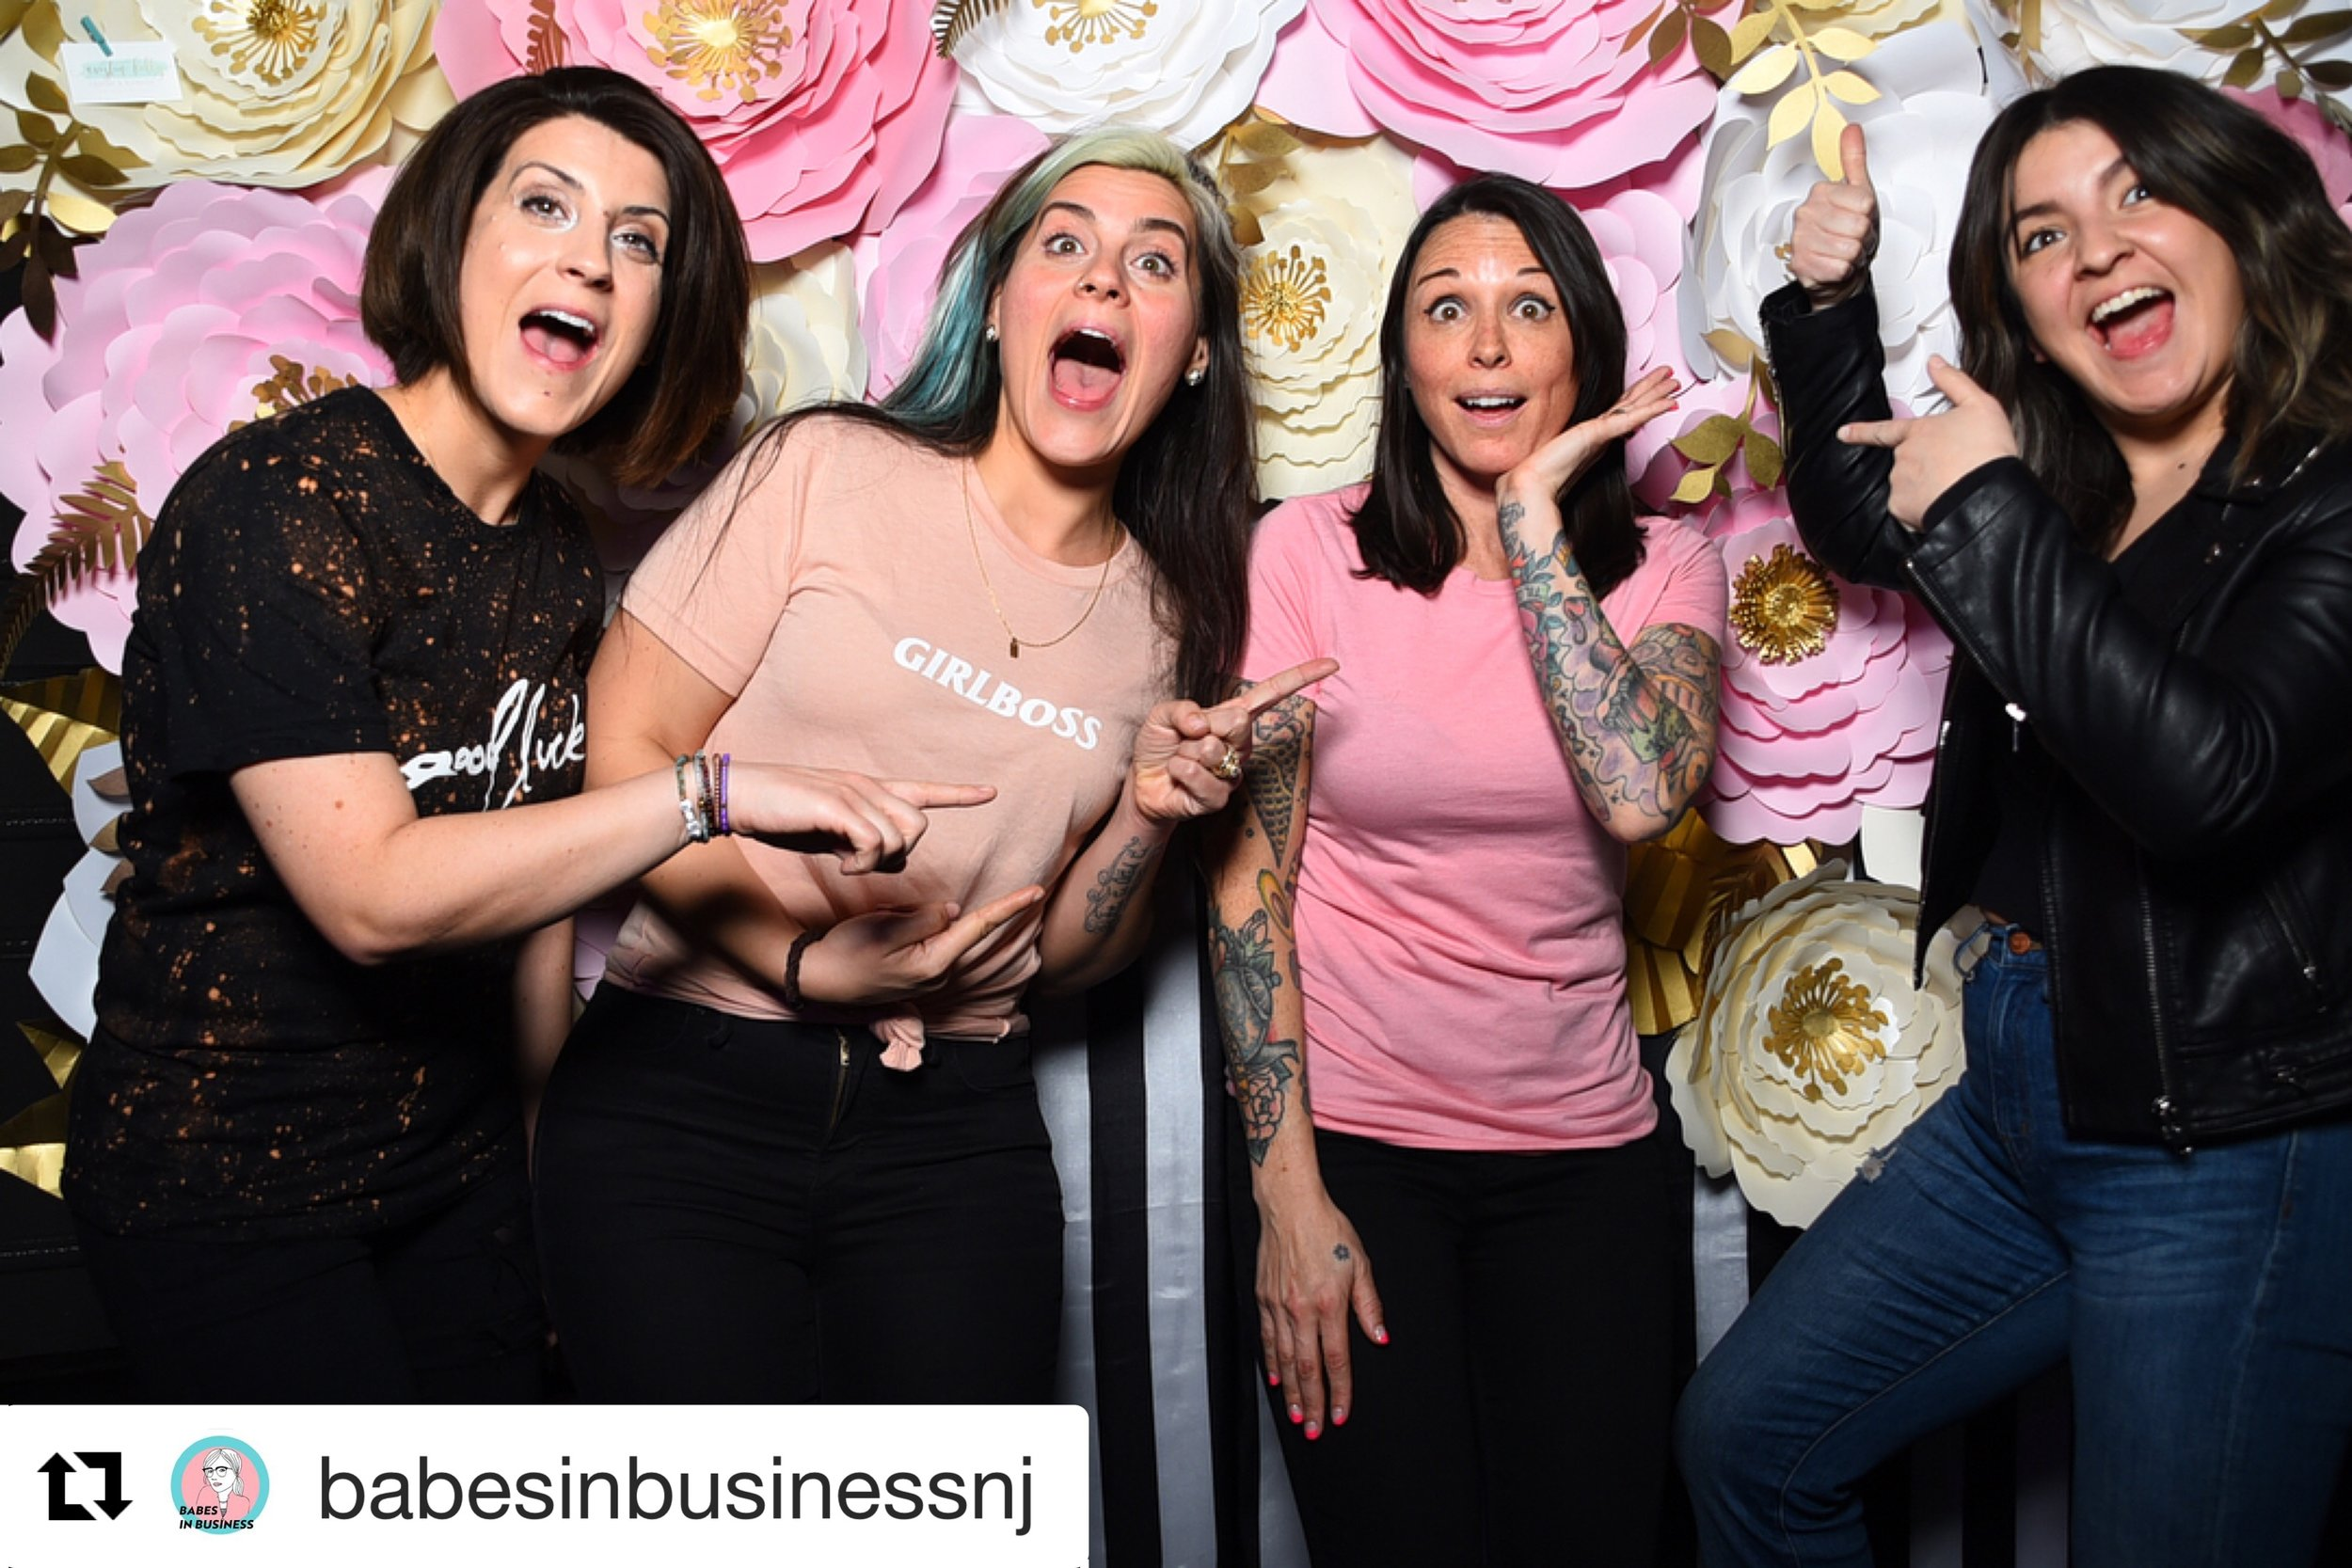 babesinbusinessnj: That flower wall tho!! More photos from our big meet up this week. Big thank you to @cristinkellydesign for providing one of her beautiful designs